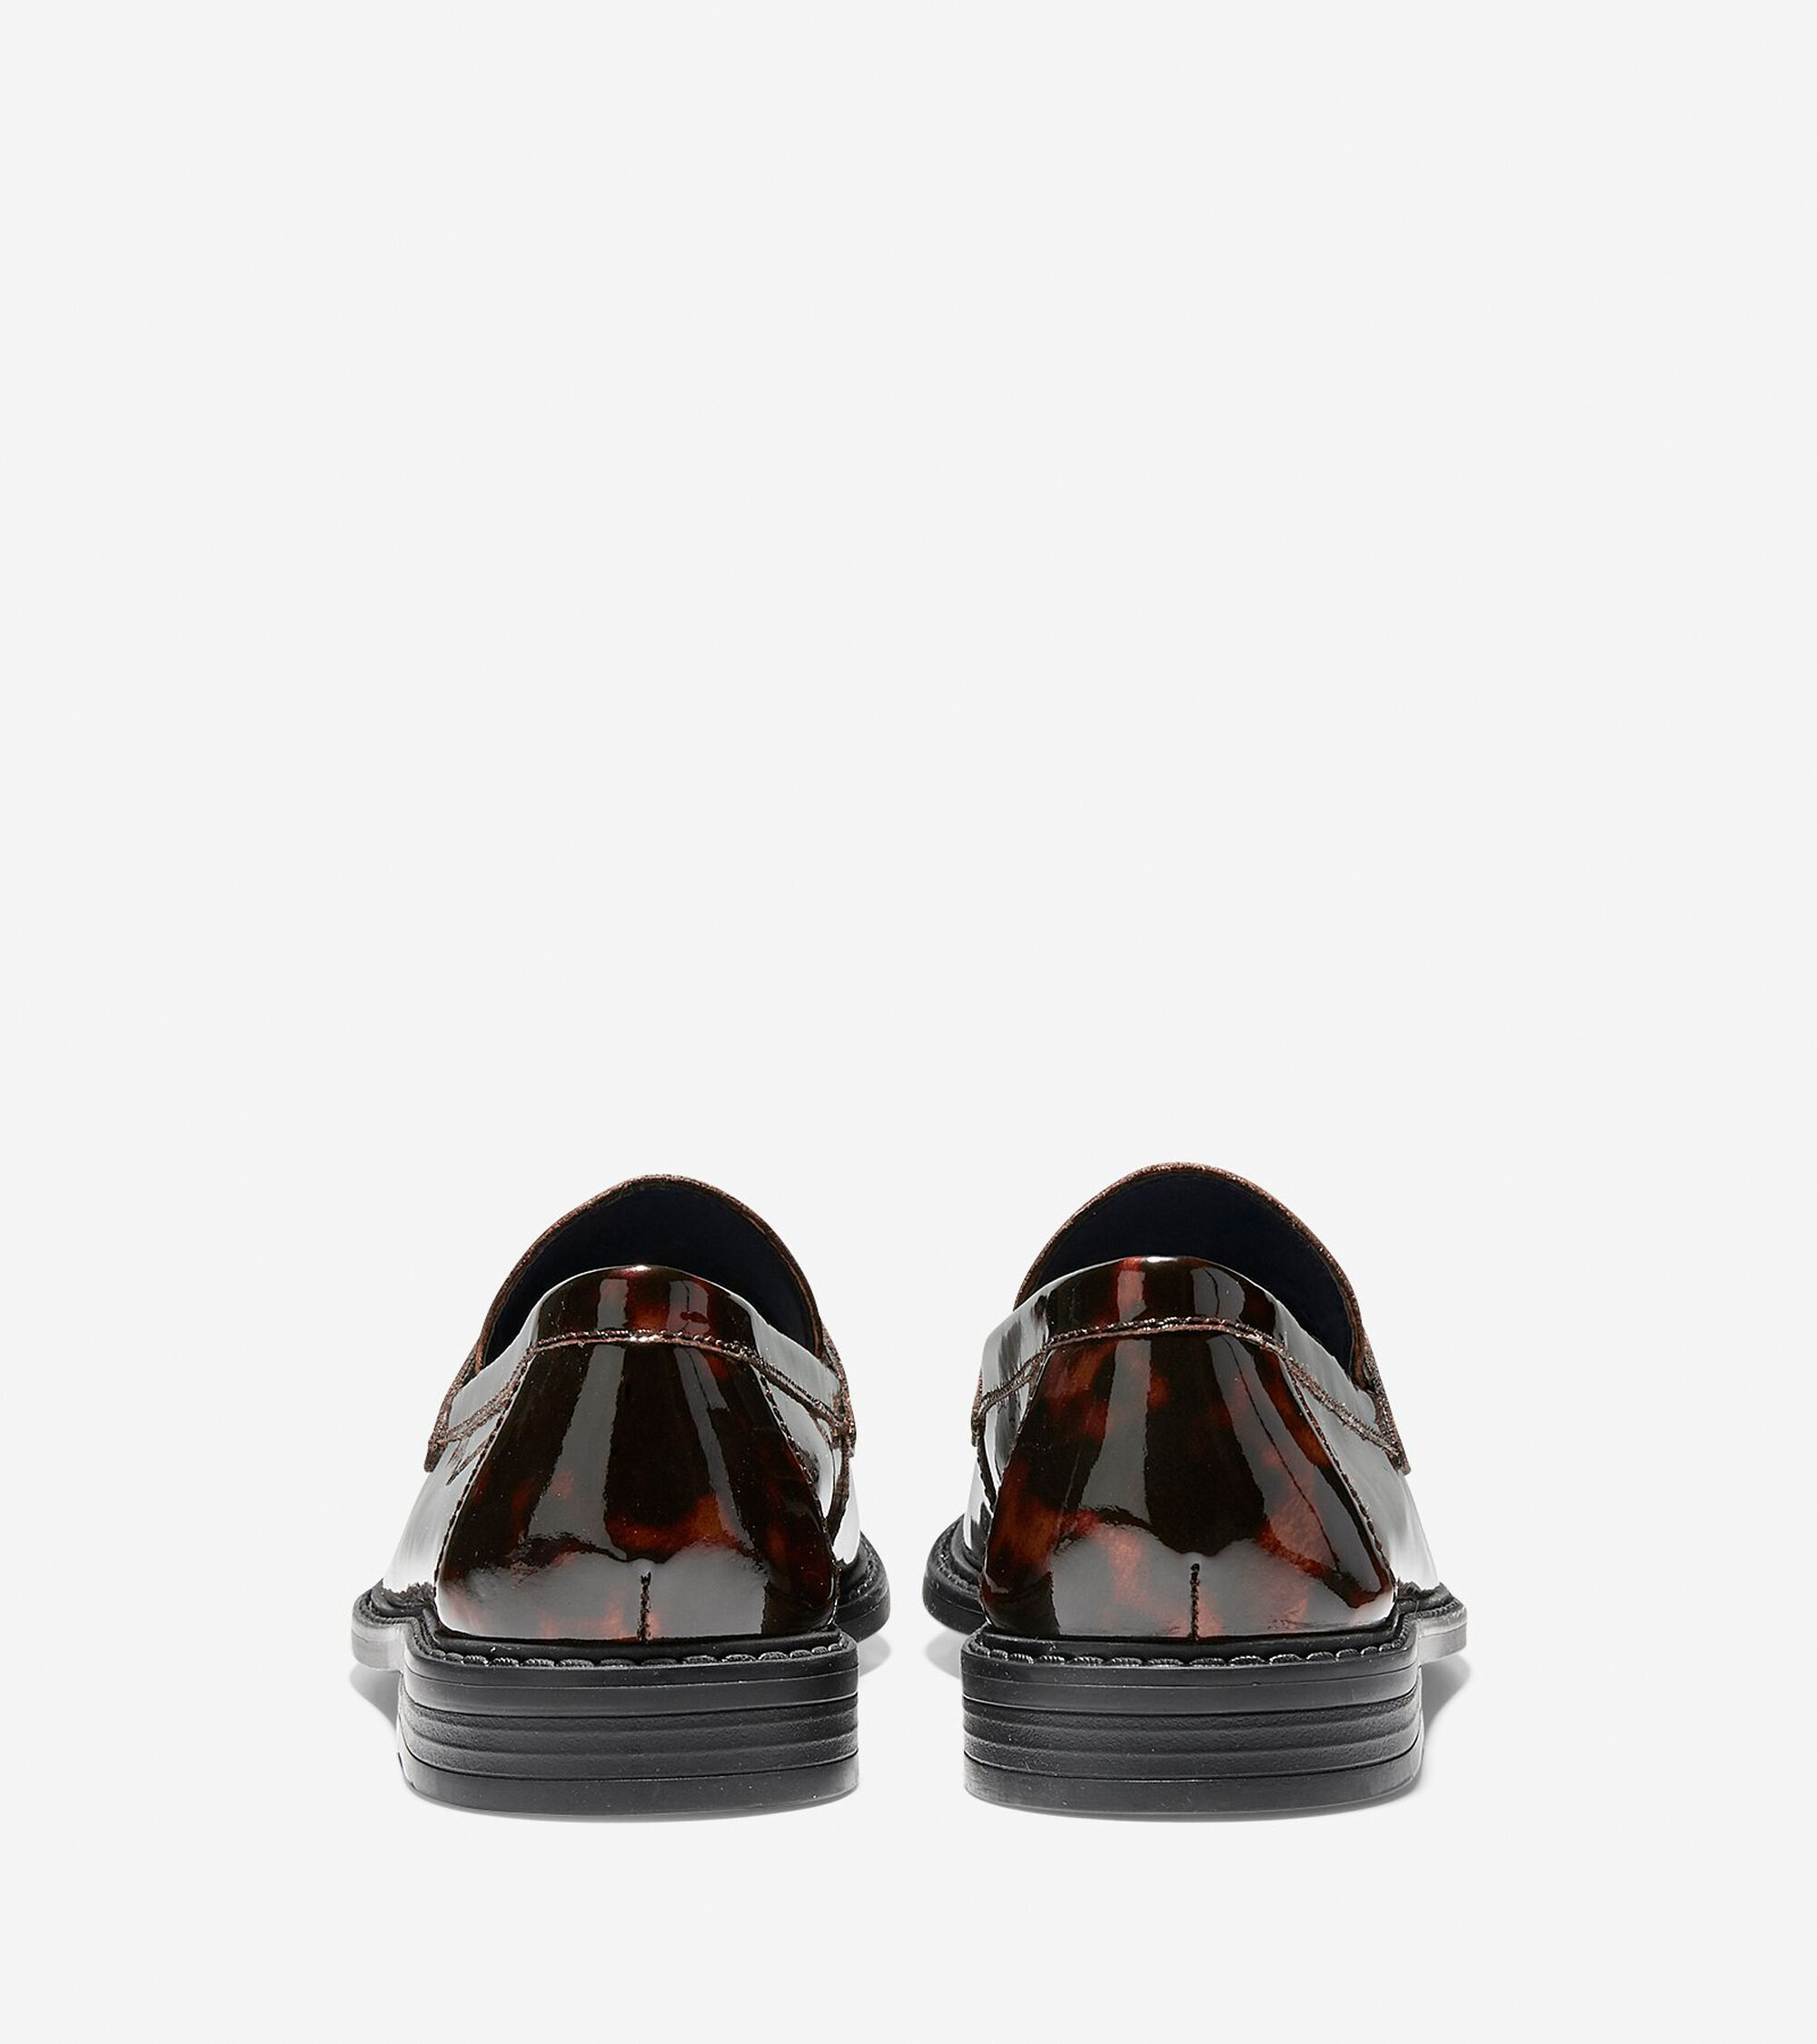 a992898b8076 Pinch Campus Penny Loafers in Tortoise Patent